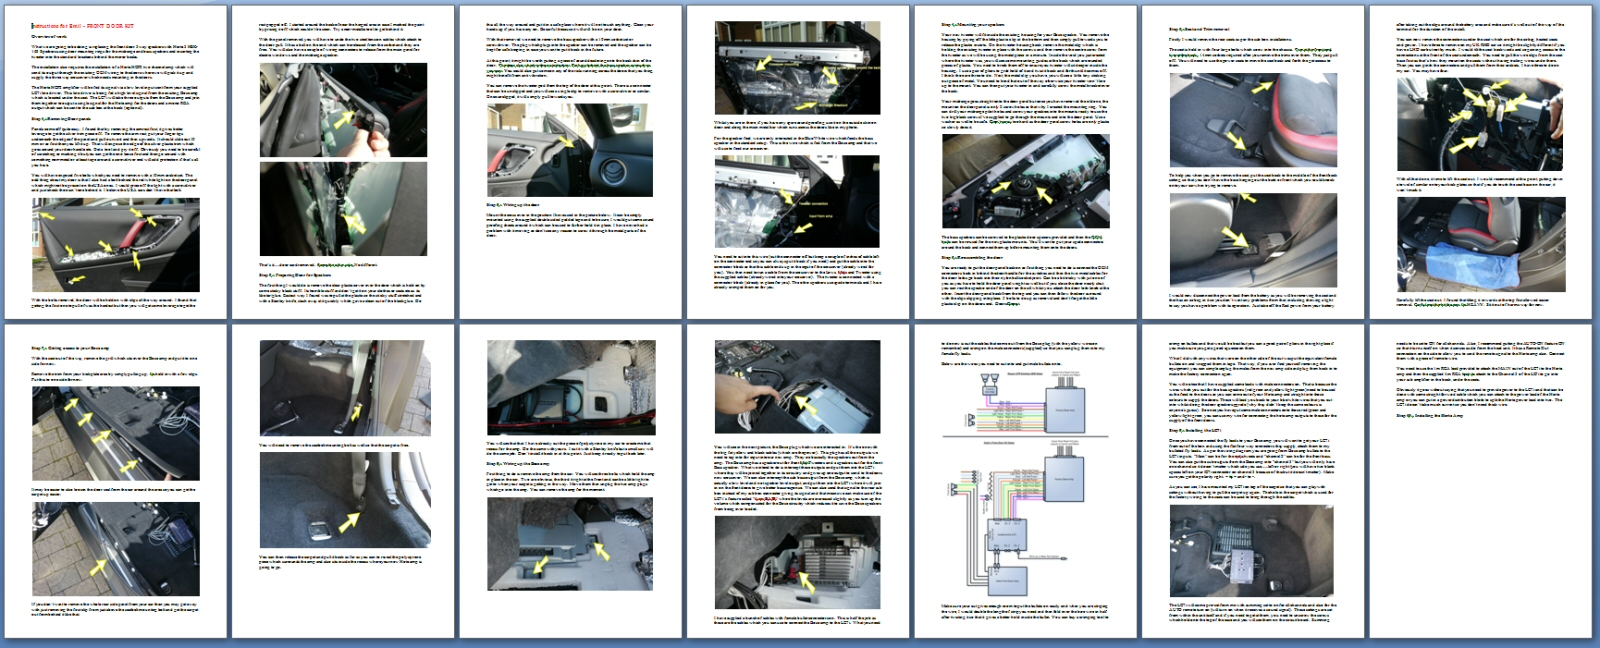 Hertz 3-Way Component Front Door Kit - Page 4 - Electronics & A/V ...